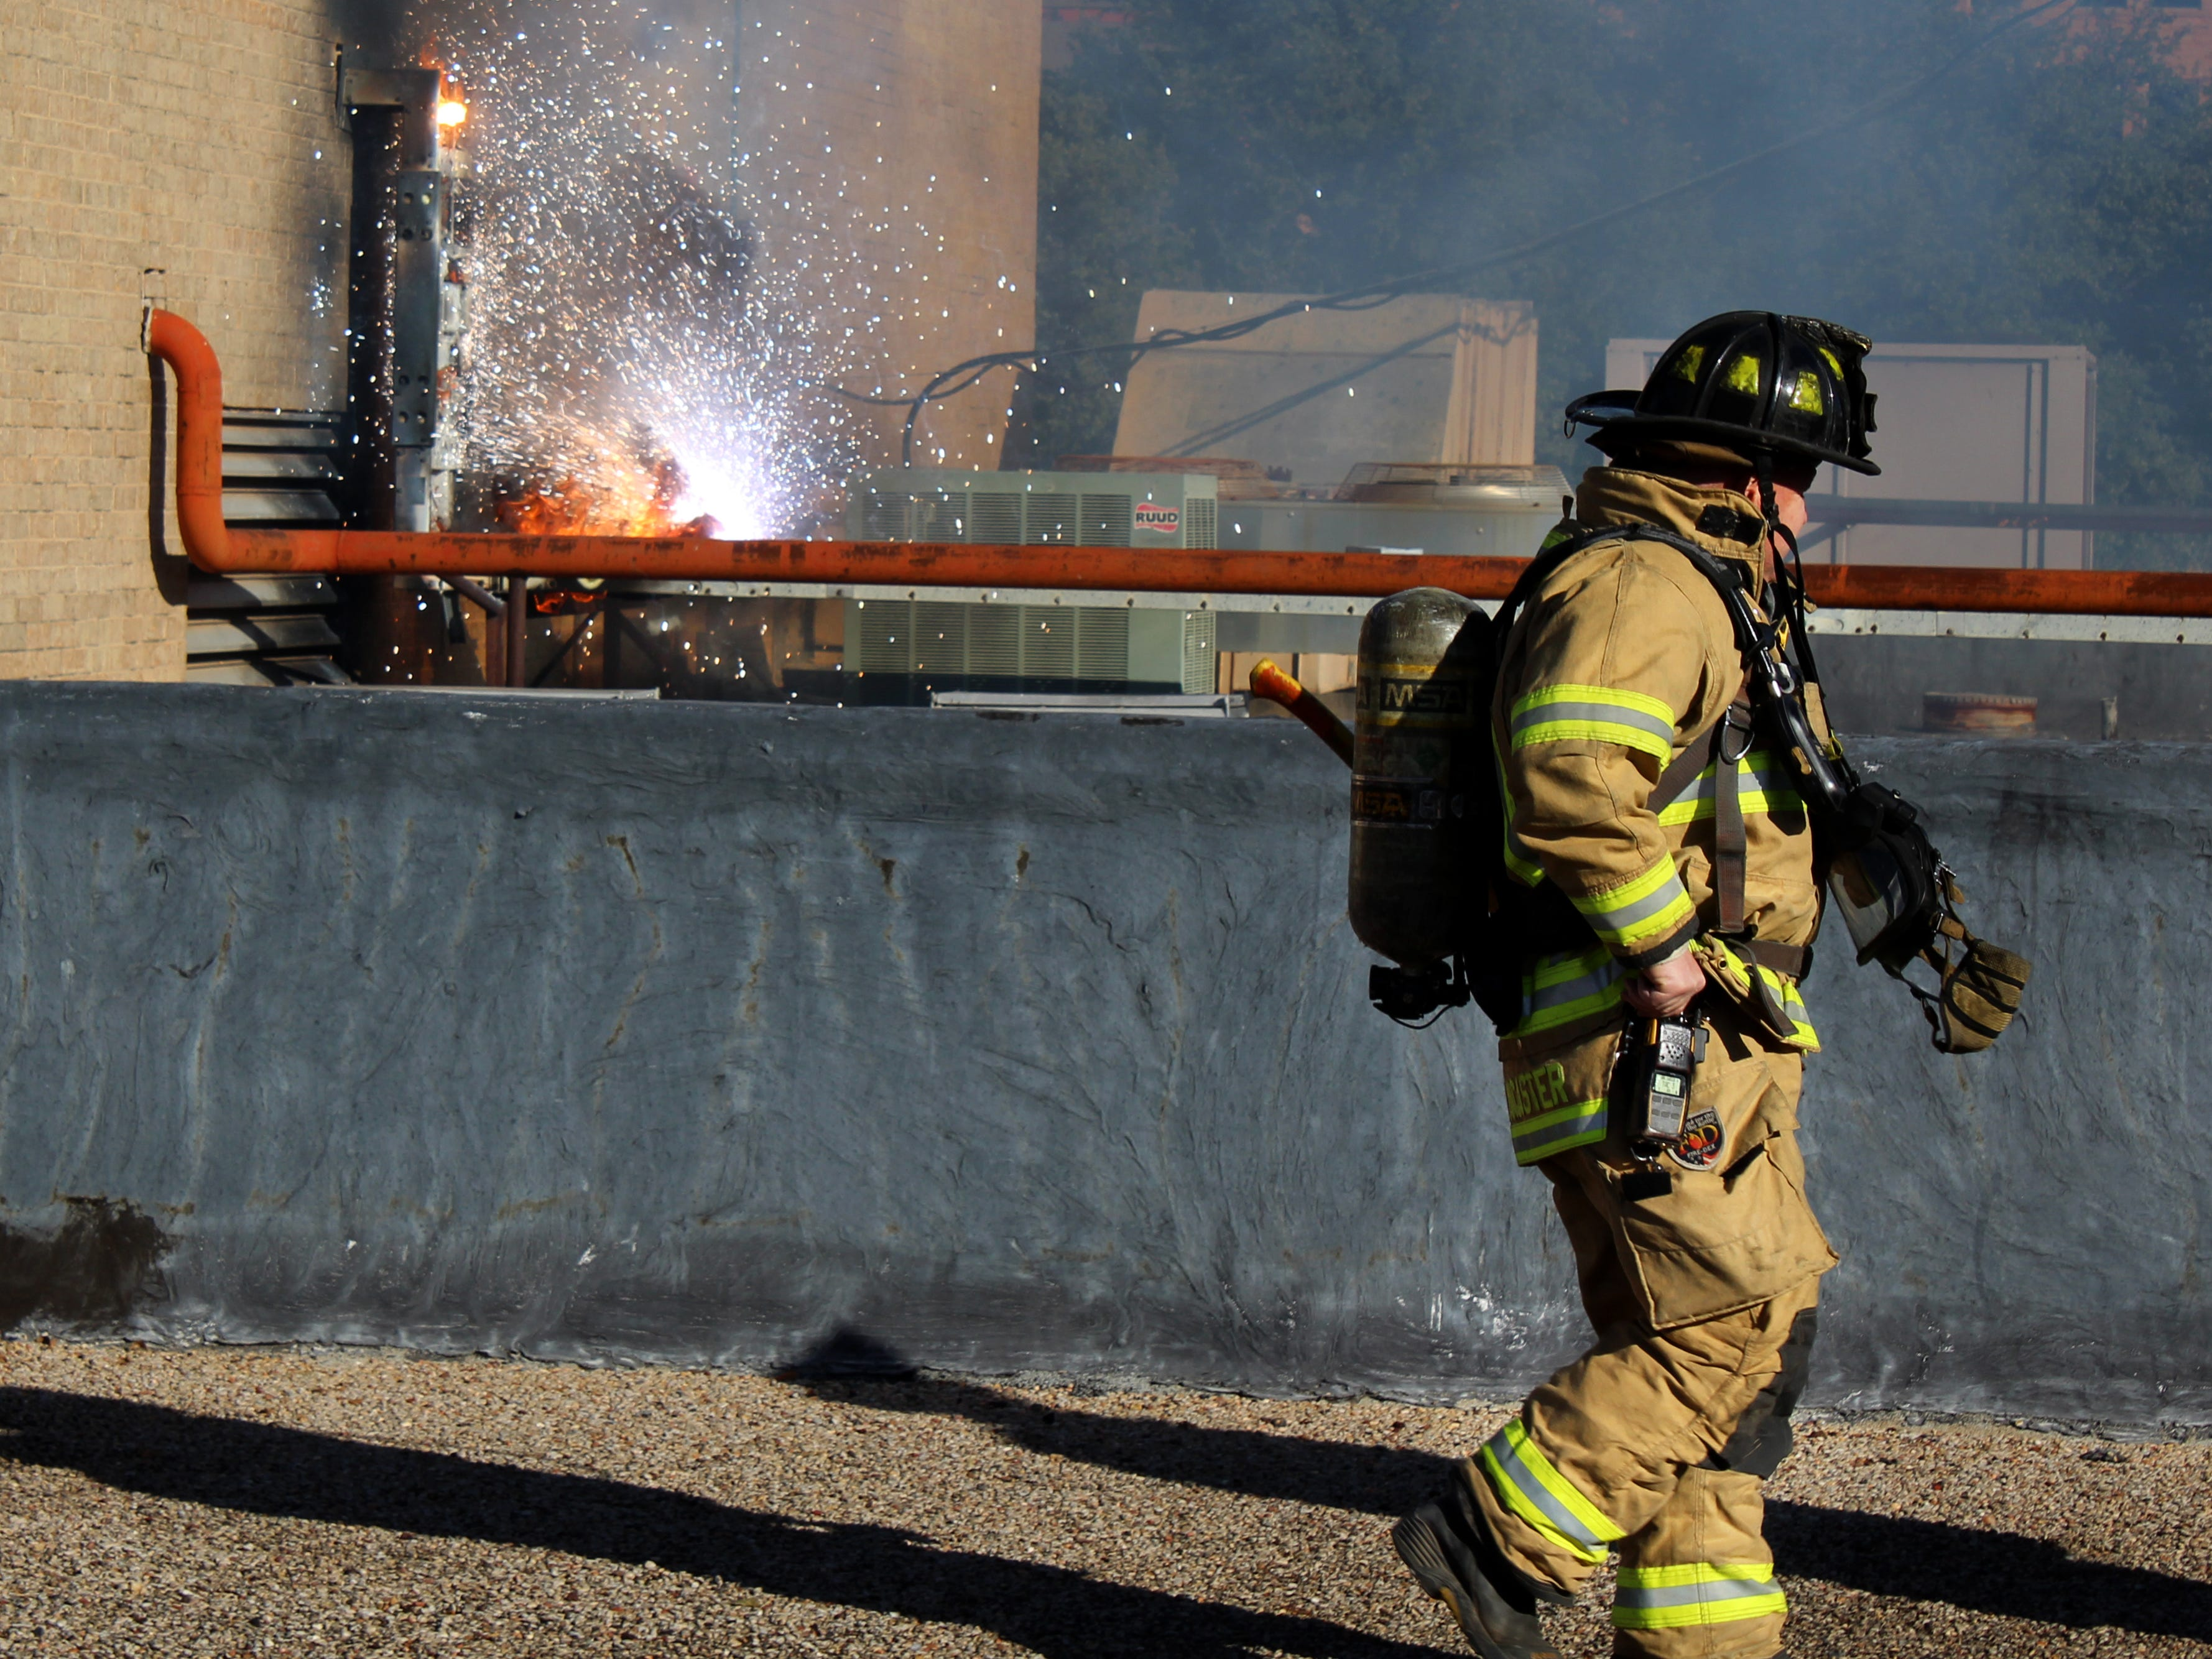 Scenes from the fire at the Abilene Reporter-News building